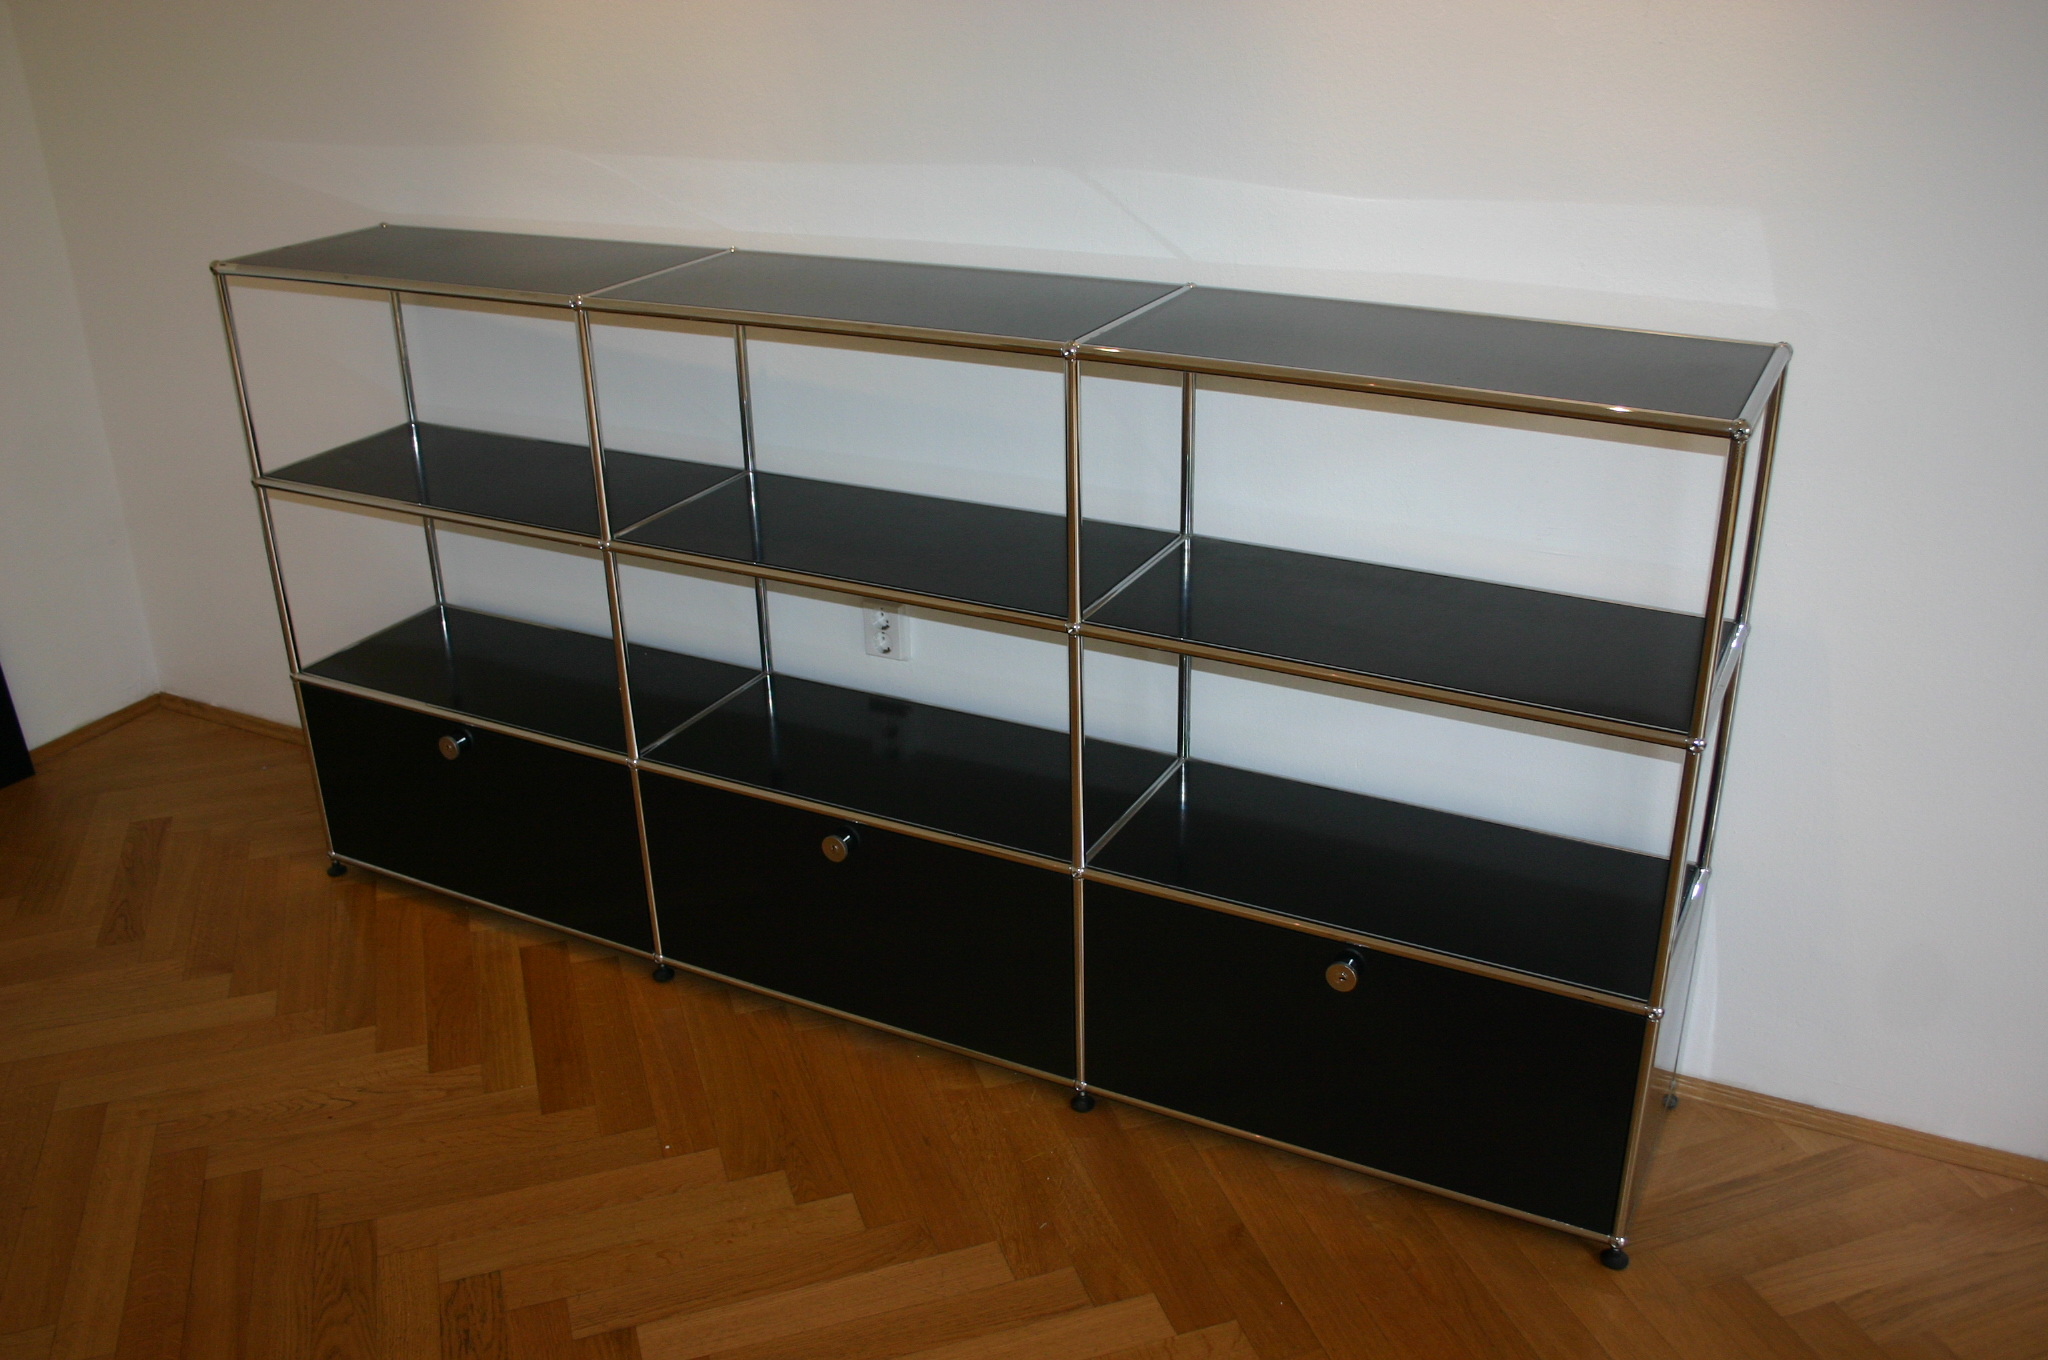 sideboard von usm haller in schwarz. Black Bedroom Furniture Sets. Home Design Ideas